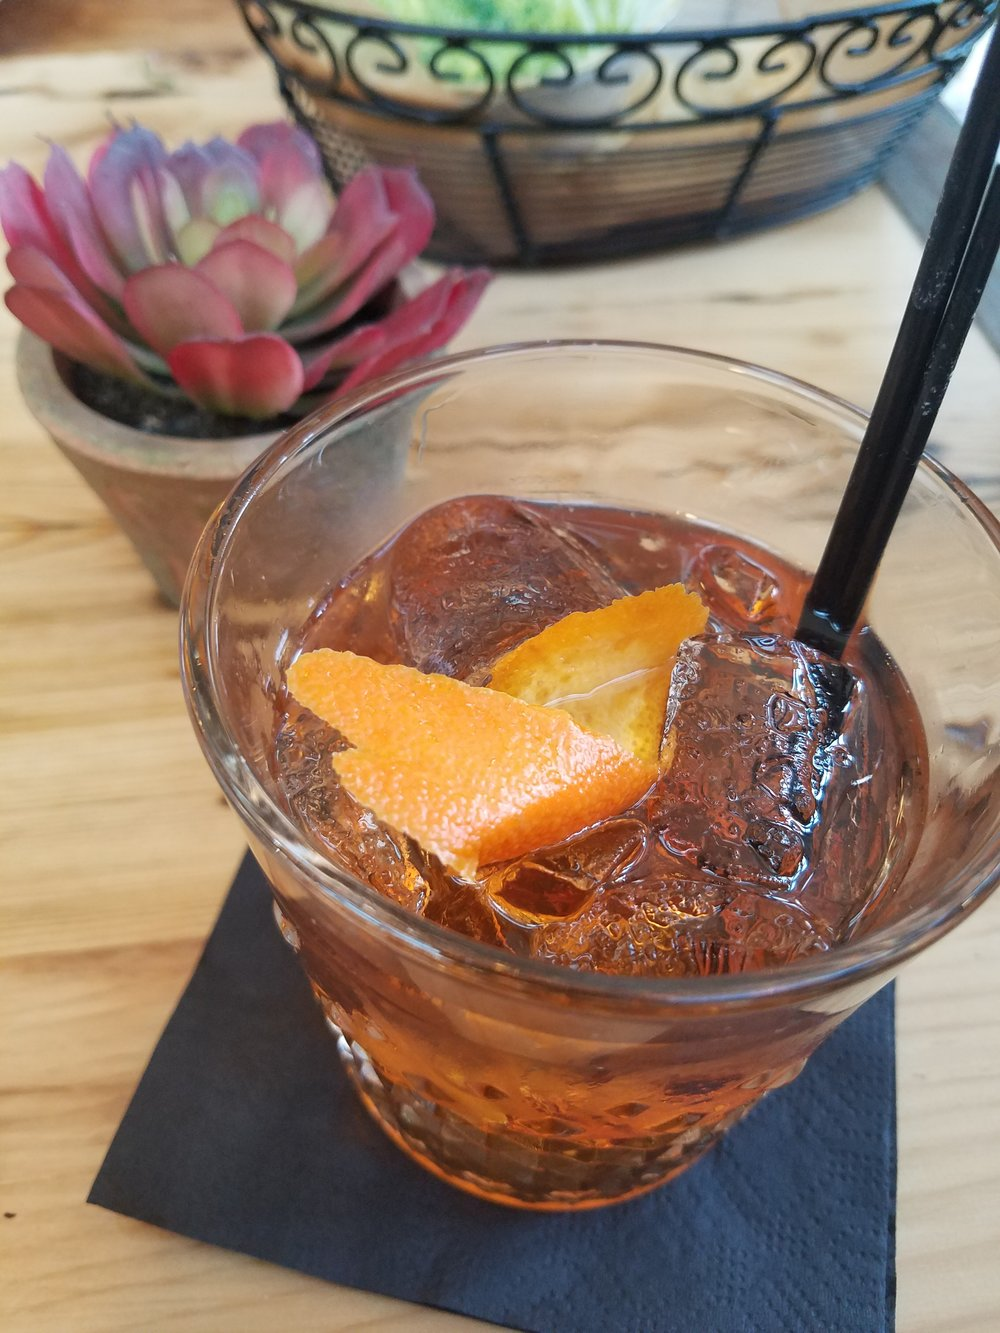 Oaxaca Old Fashioned.